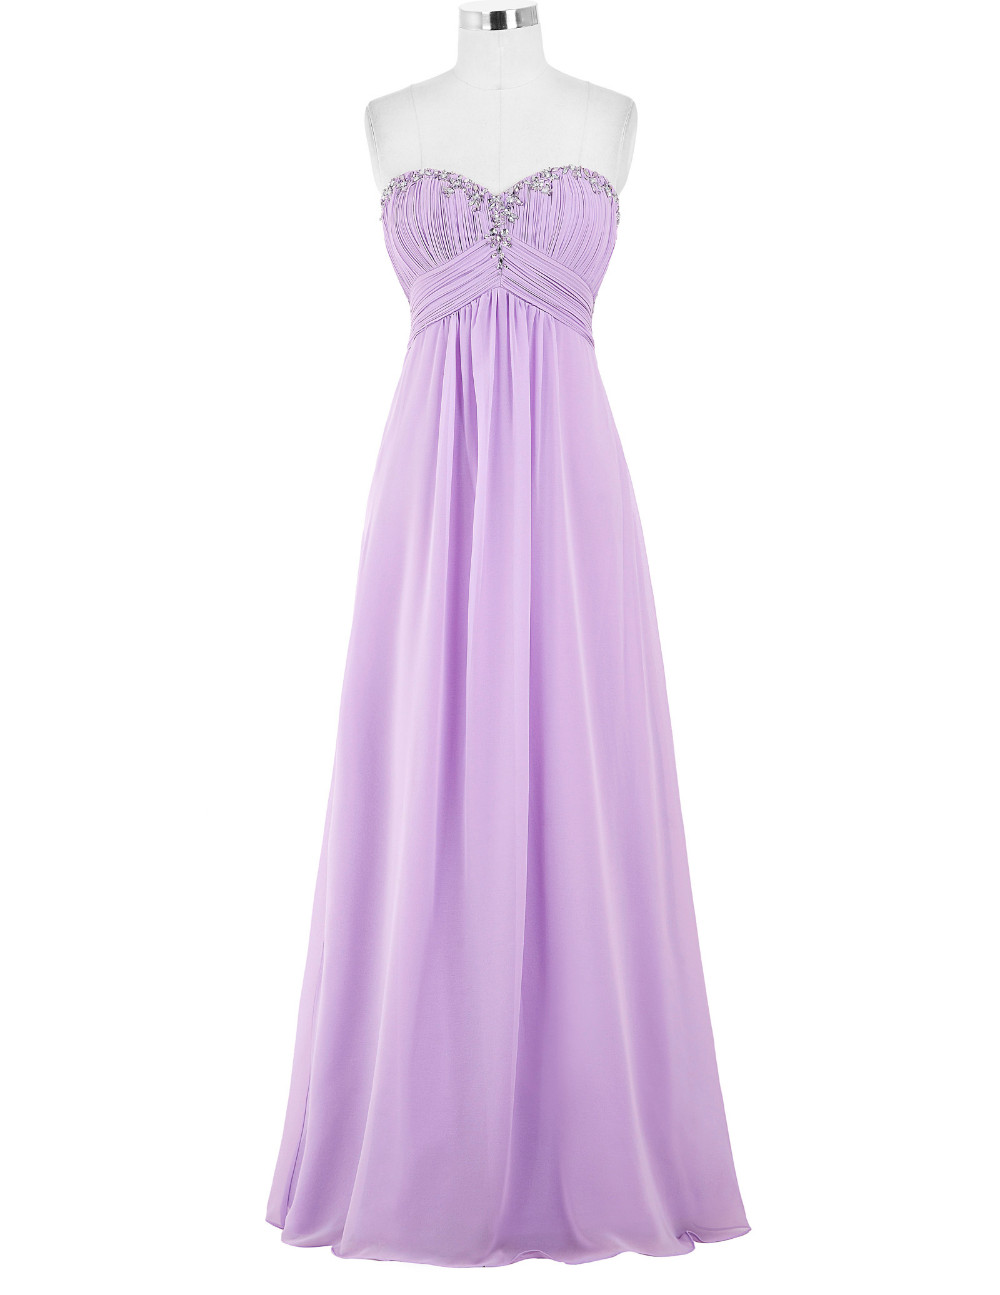 3dd442402 Elegant Light Purple Evening Dresses Long Formal Gown Chiffon Prom Dresses  2018 Sexy Evening Gown Dress